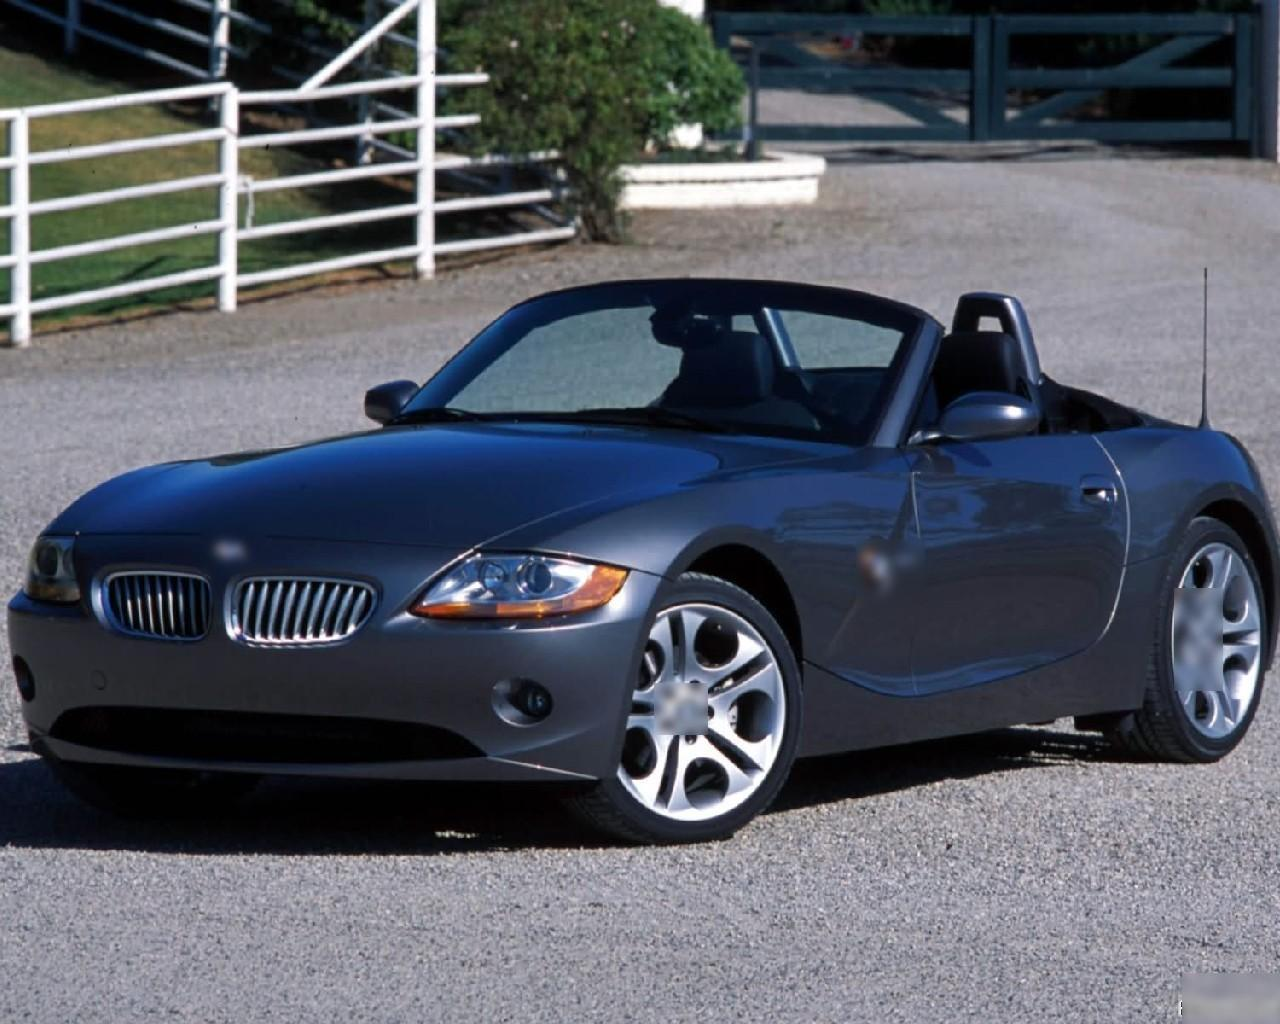 Wallpapers Bmw Z4 Roadster For Android Apk Download